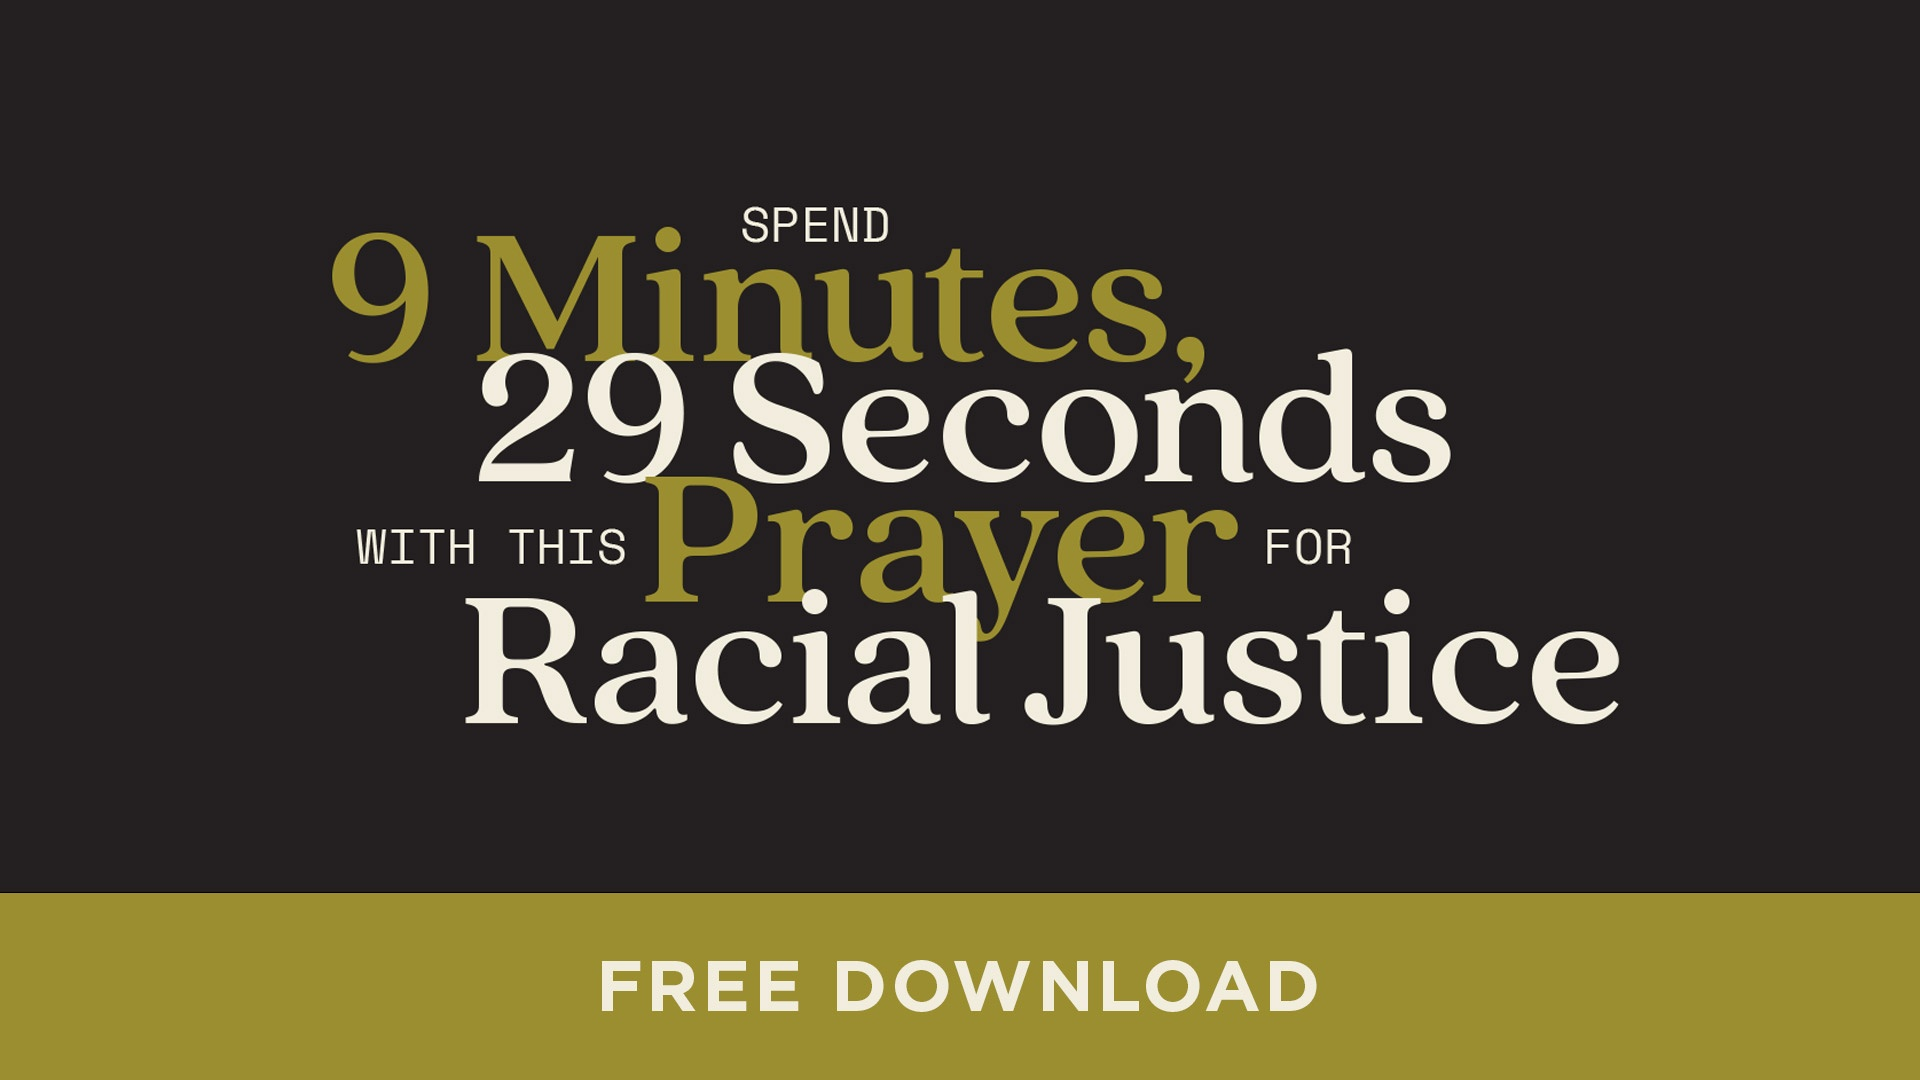 Click here to download this free prayer for racial justice.